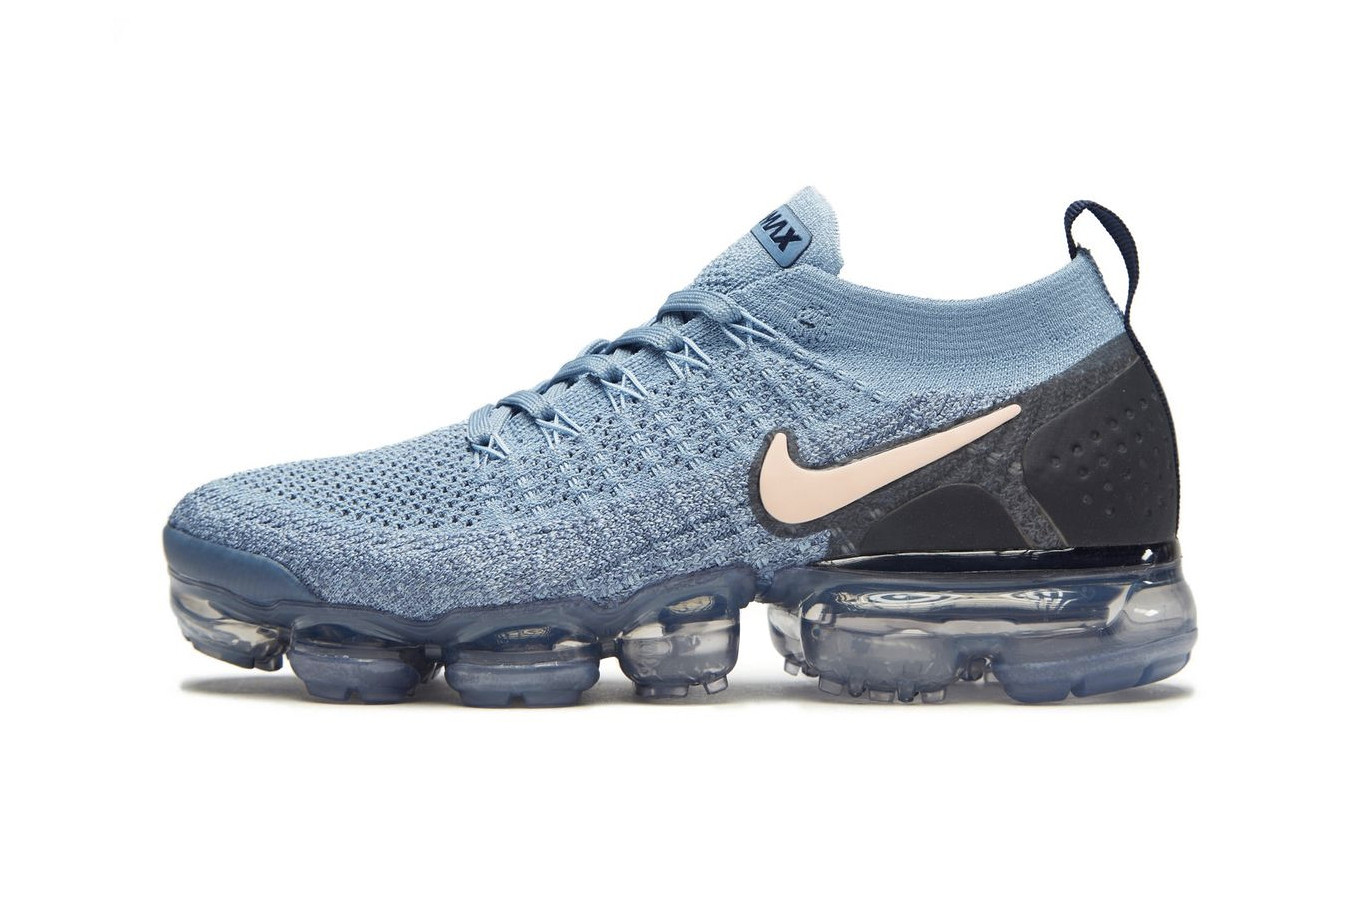 Air VaporMax Flyknit 2.0 in Baby Blue